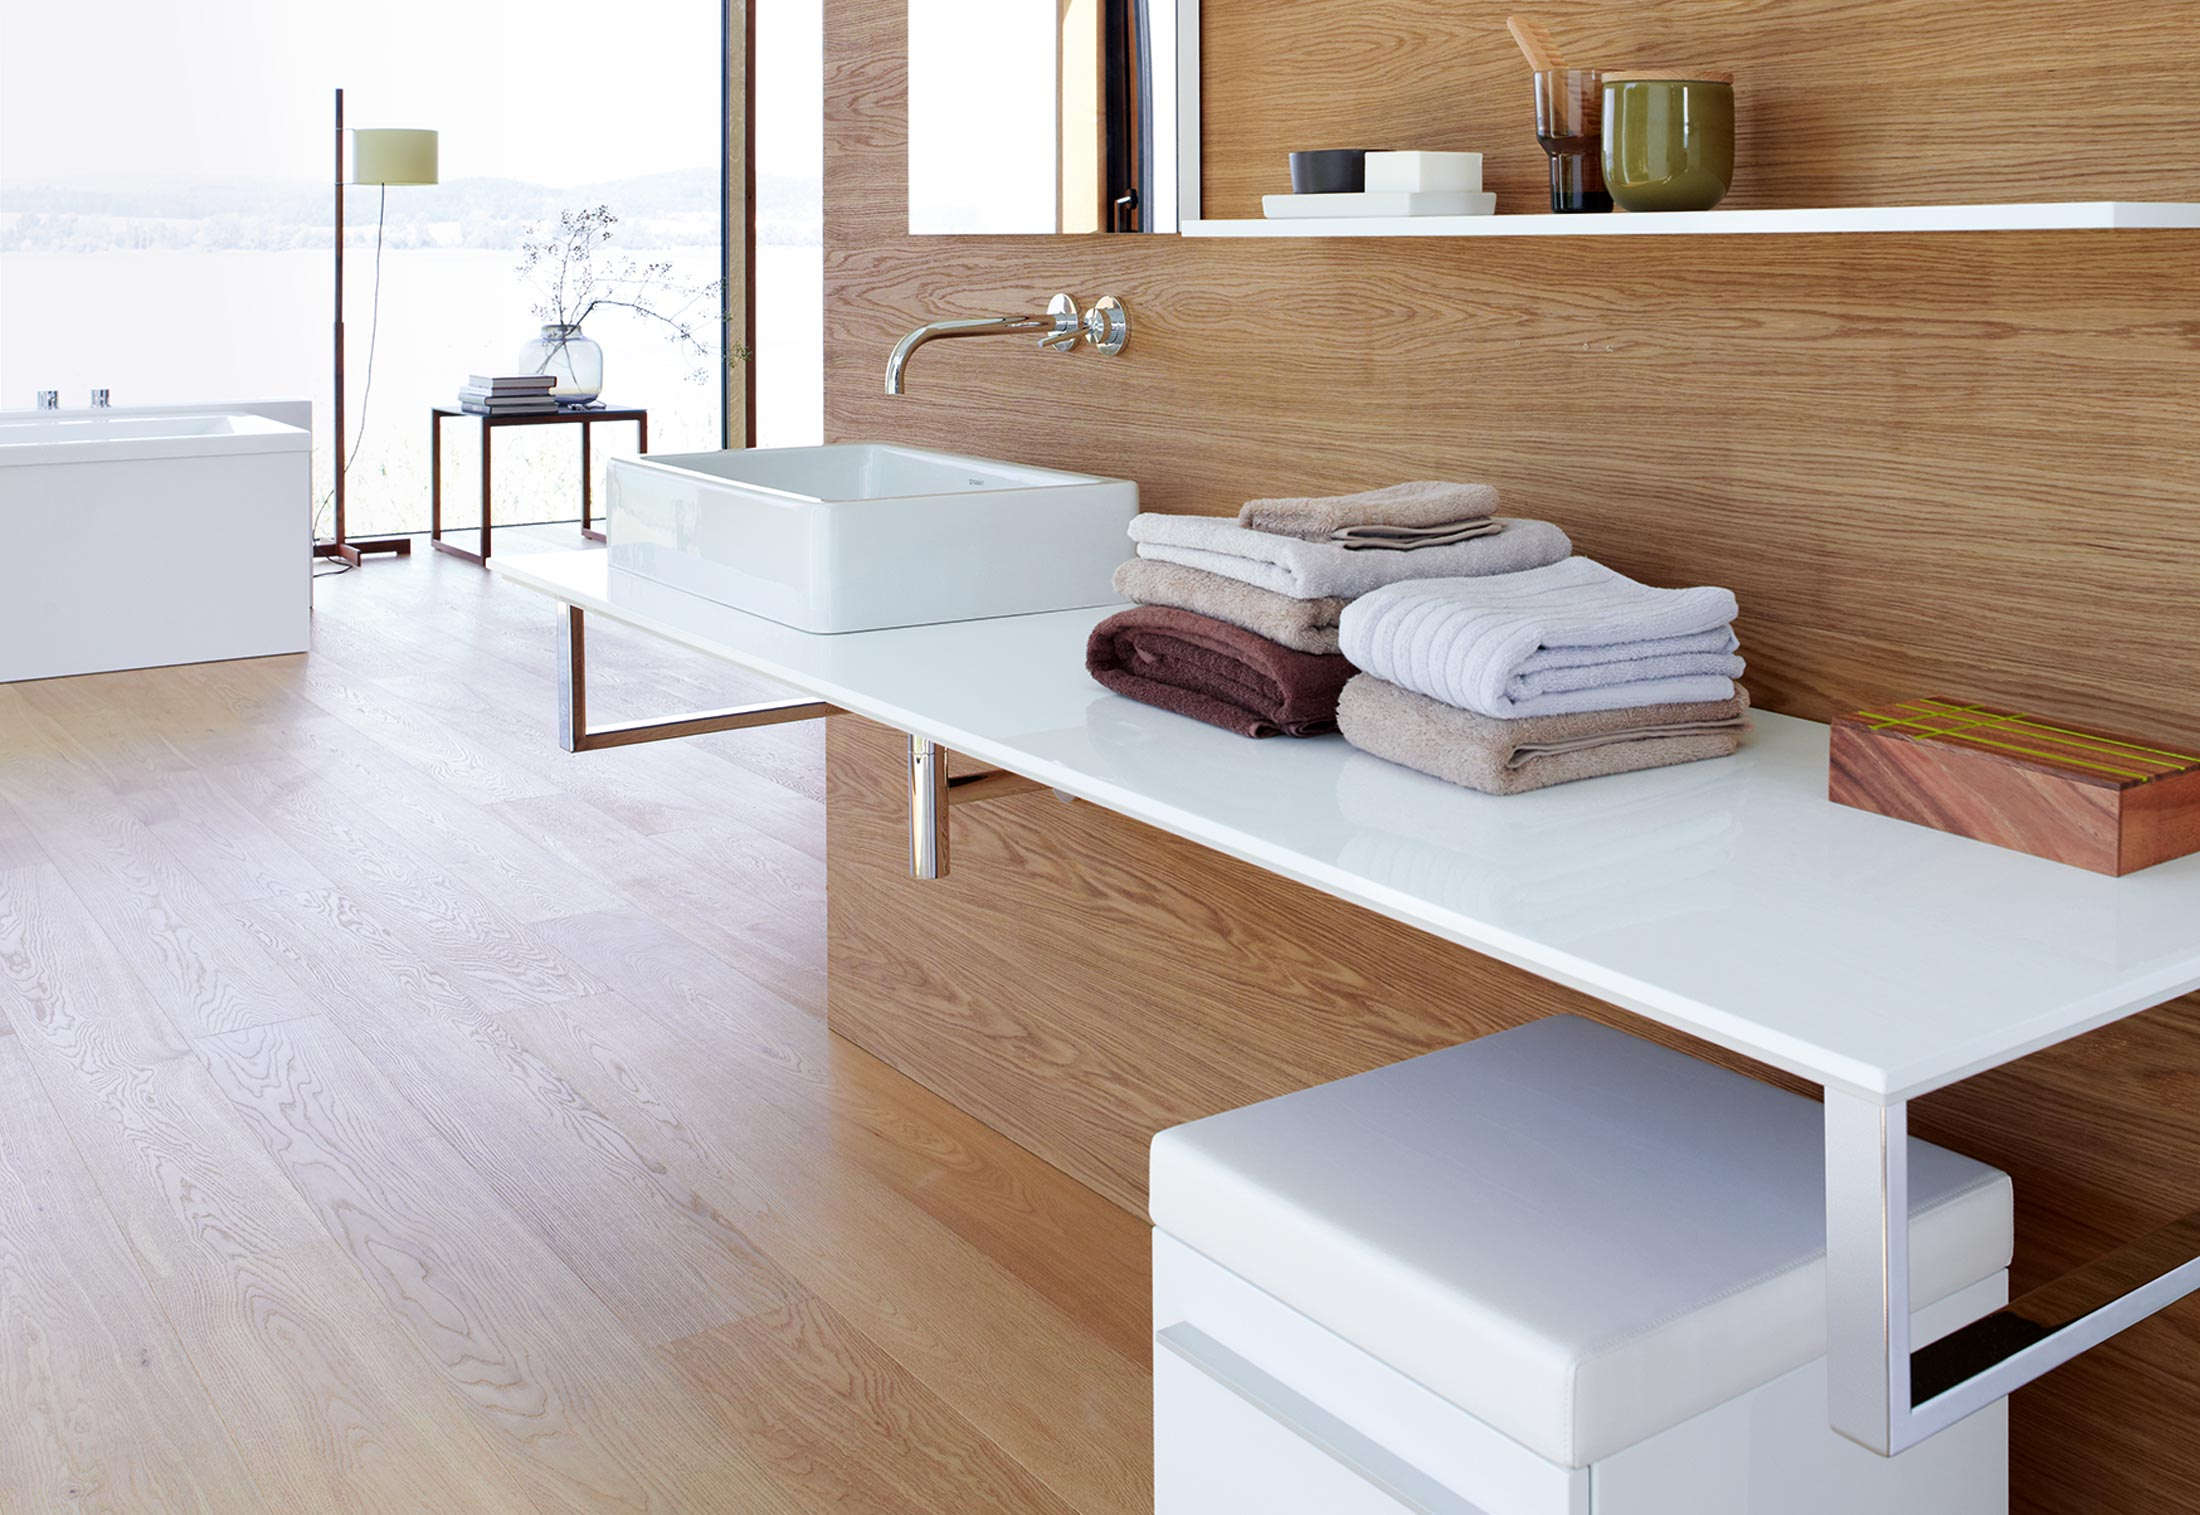 x large console for above counter basin